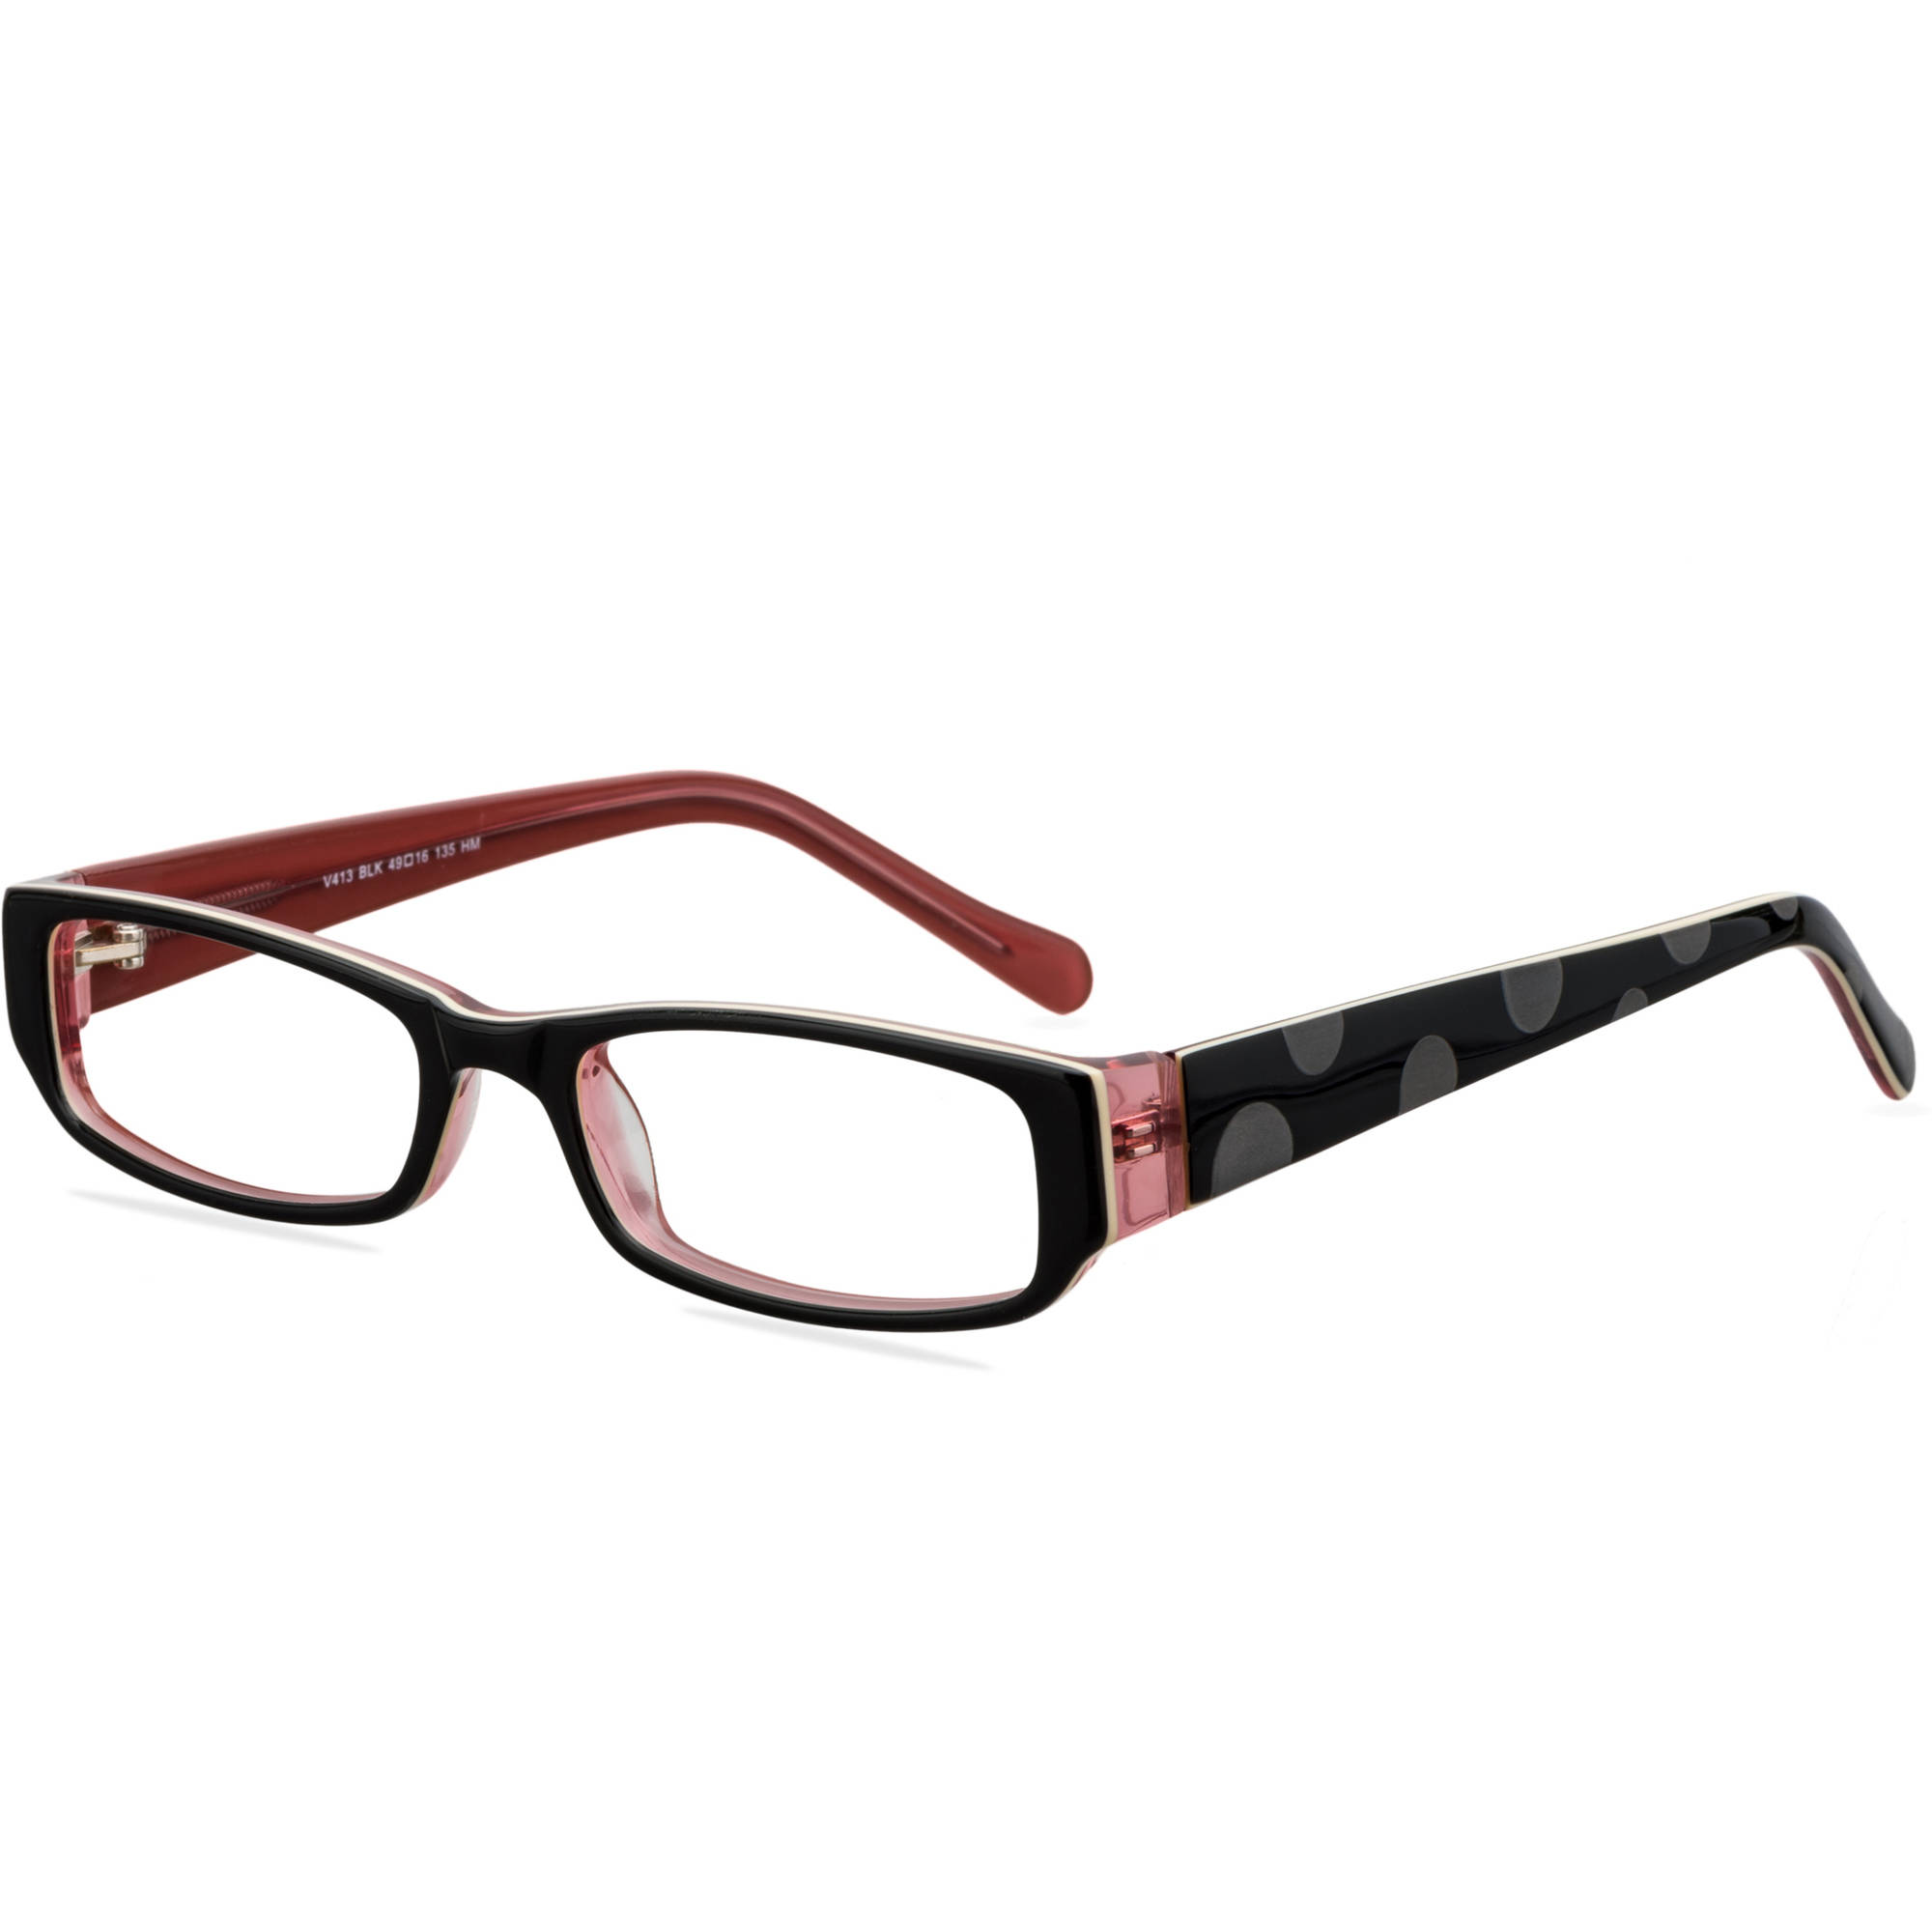 Victorious Womens Prescription Glasses, V413 Black - Walmart.com